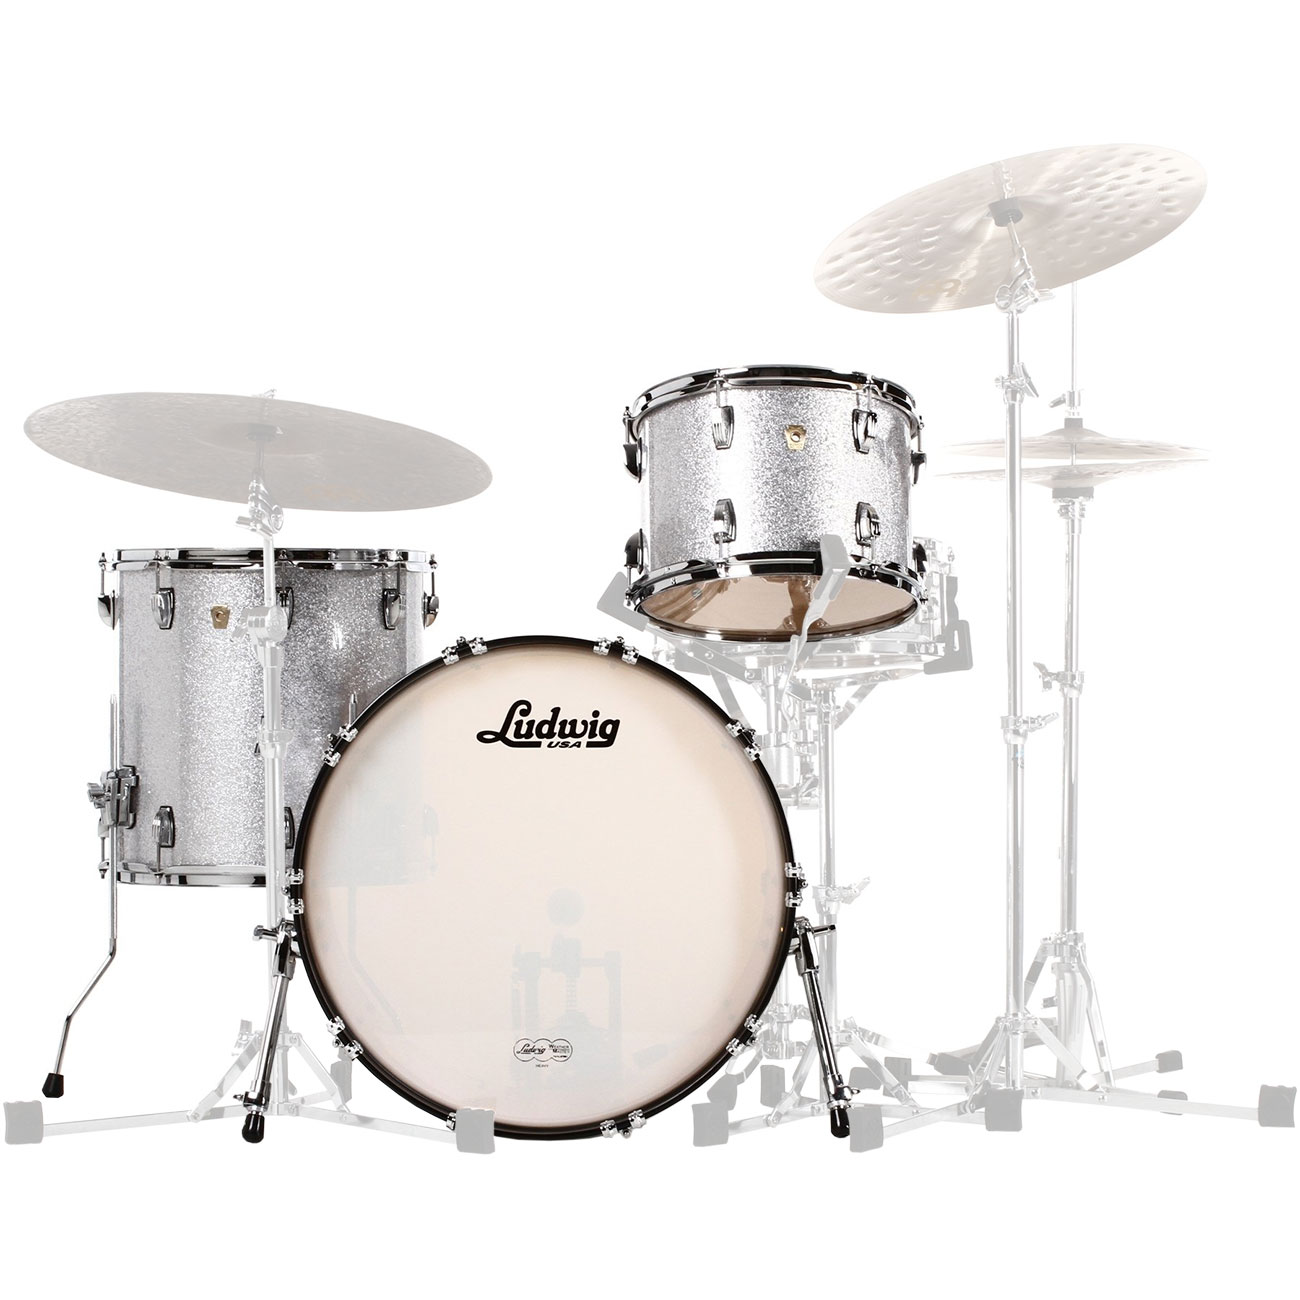 ludwig classic maple 3 piece fab drum set shell pack 22 bass 13 16 toms l84233ax. Black Bedroom Furniture Sets. Home Design Ideas